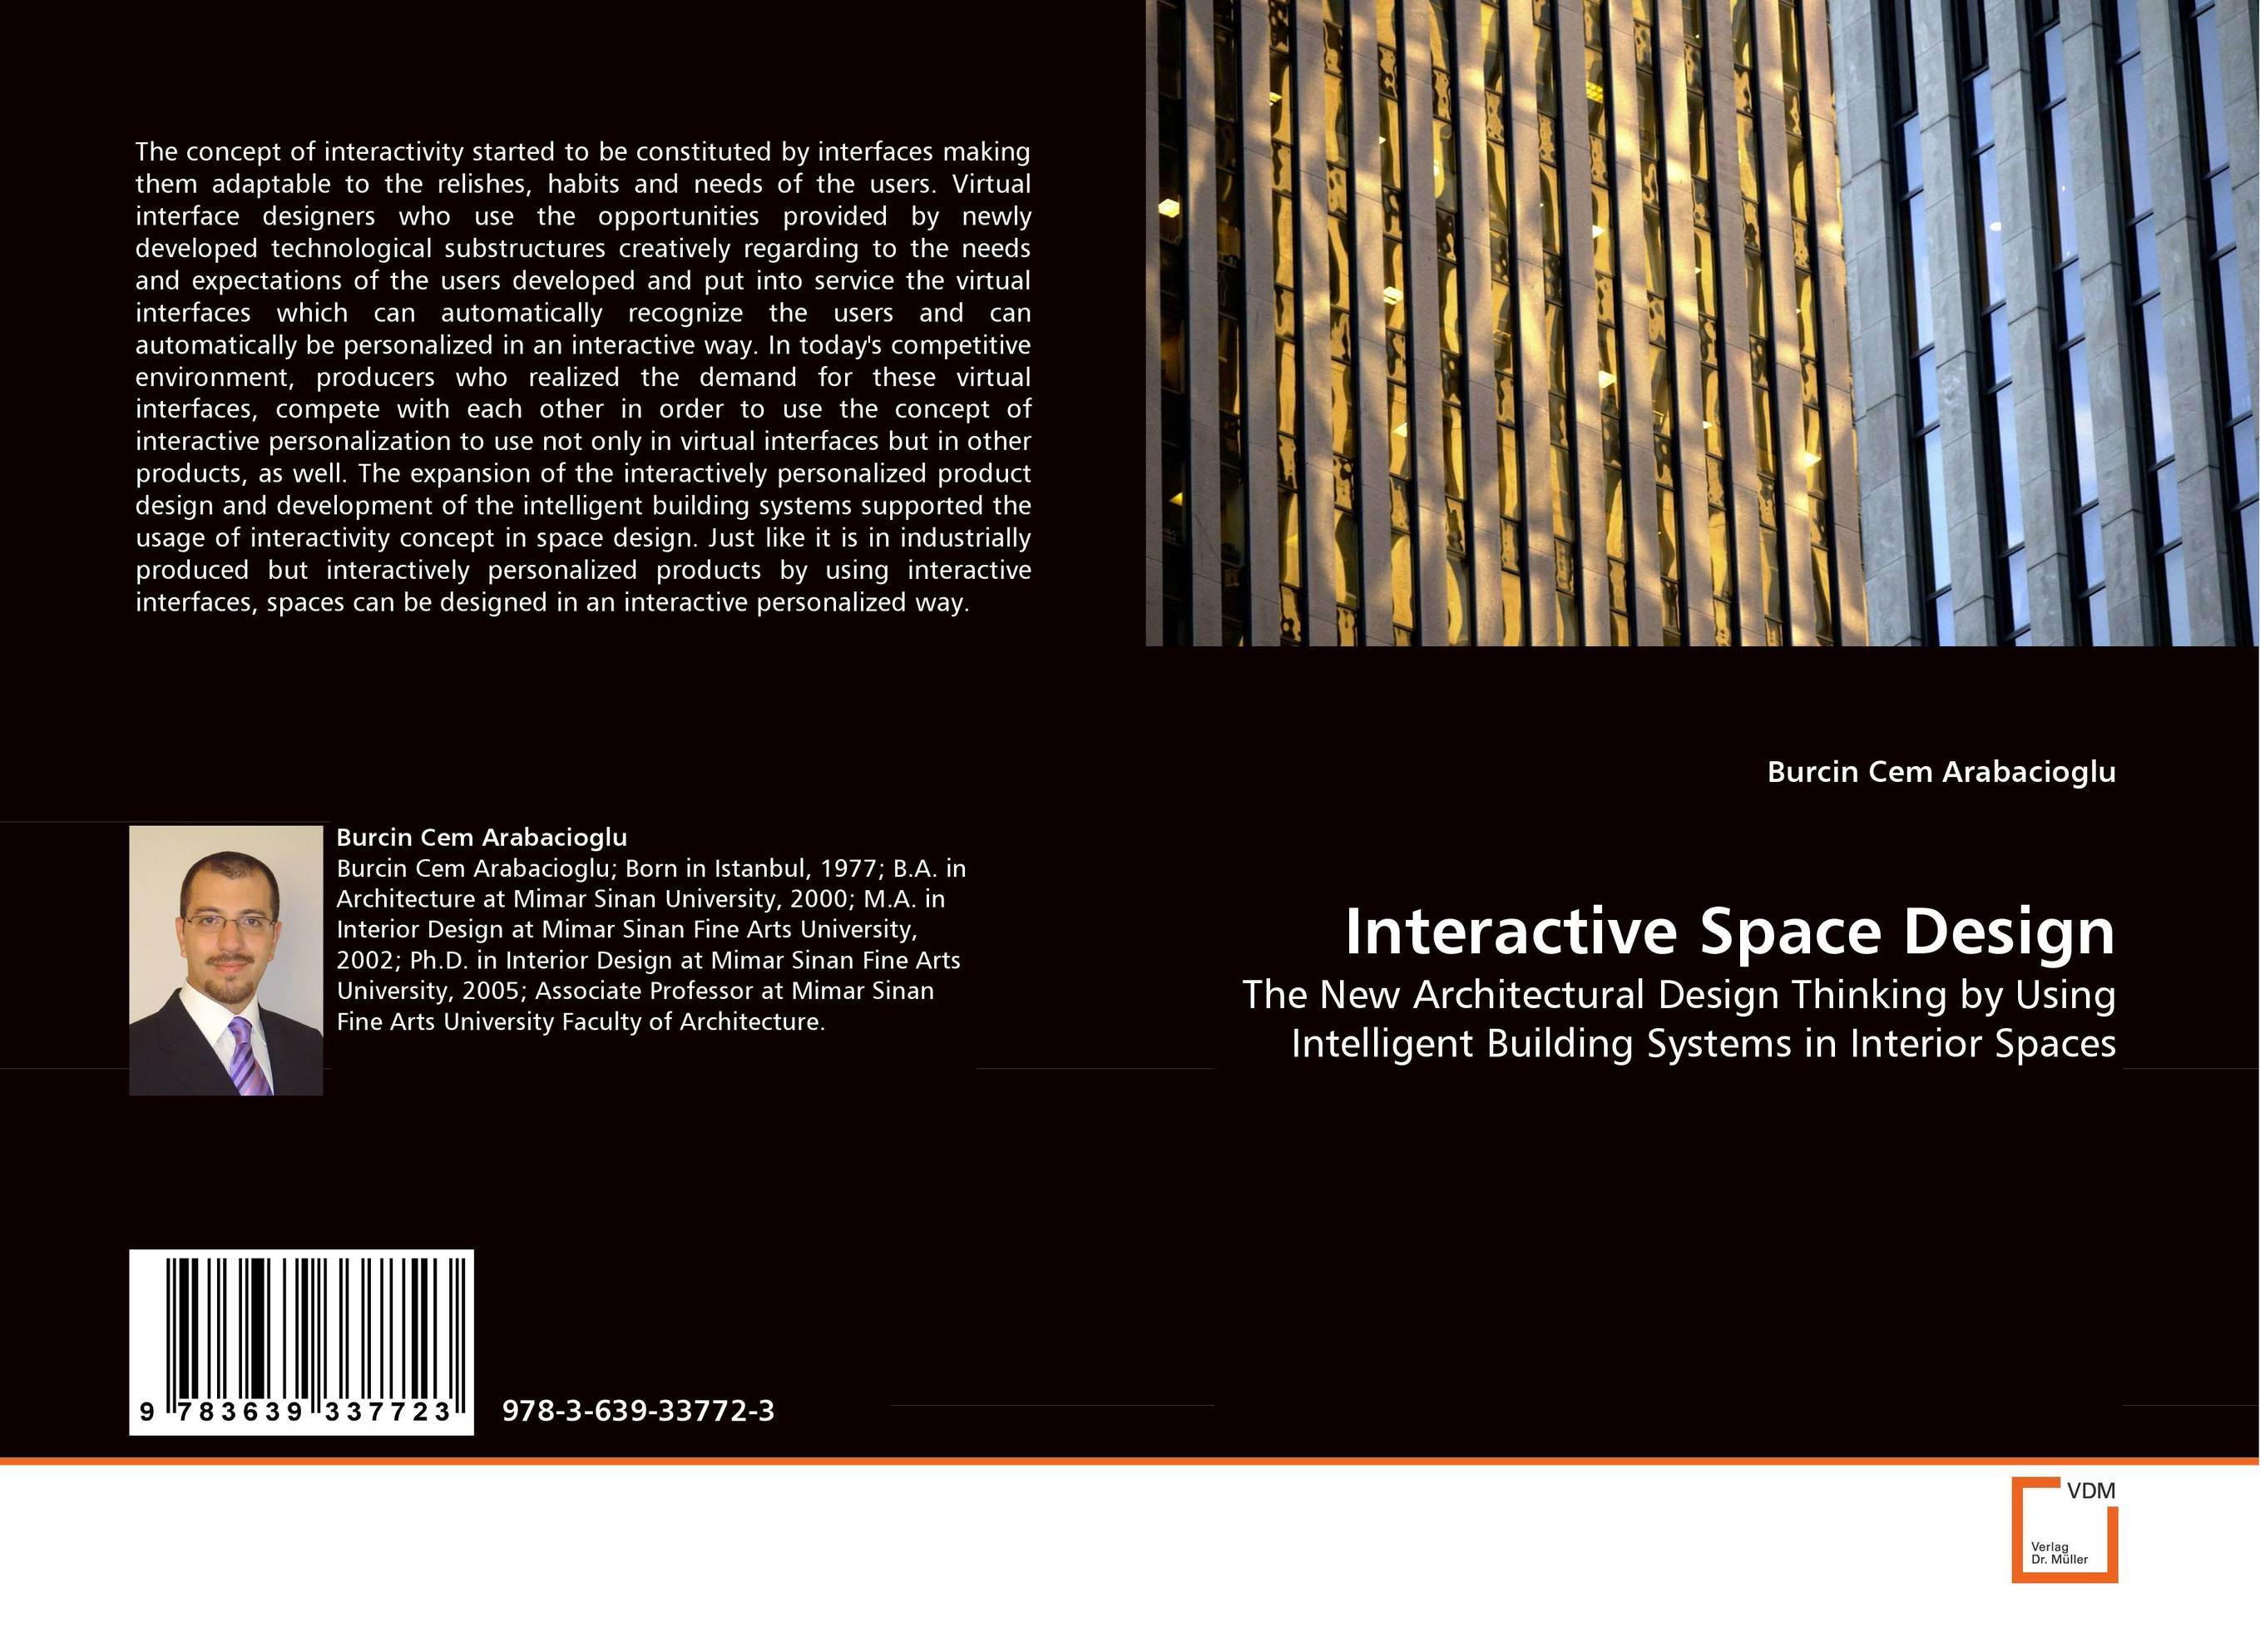 Interactive Space Design designing gestural interfaces touchscreens and interactive devices